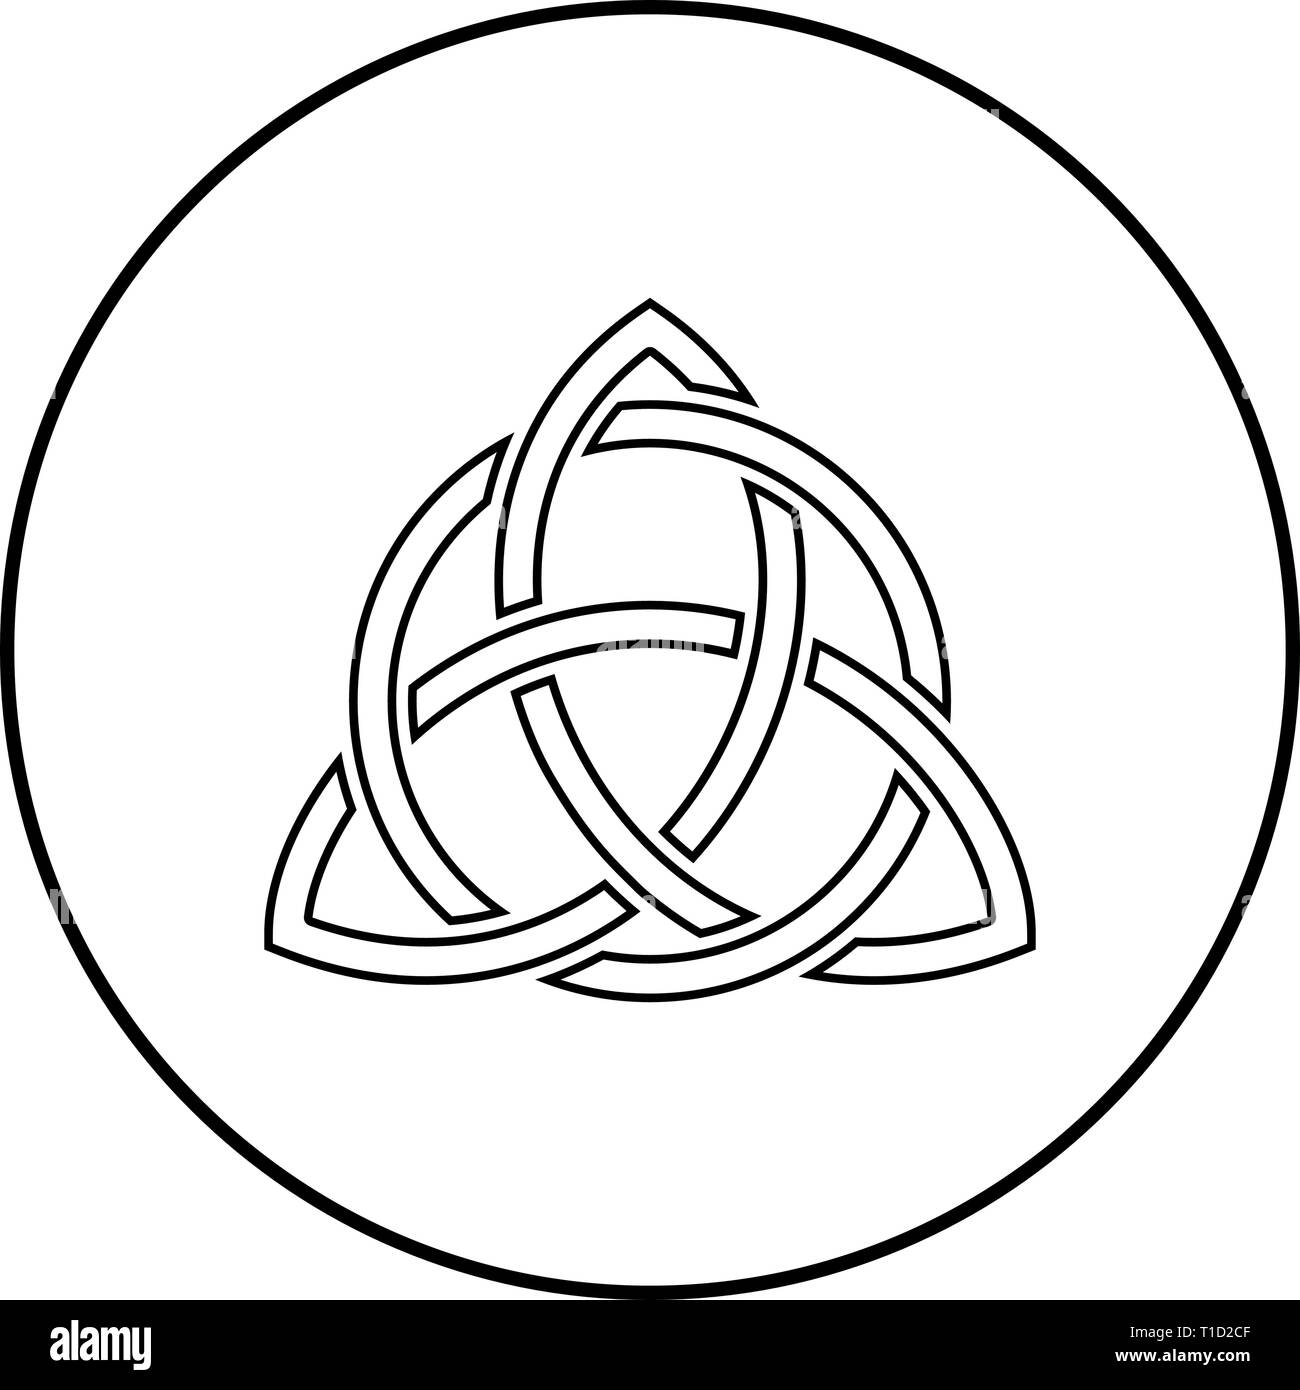 Triquetra in circle Trikvetr knot shape Trinity knot icon outline black color vector in circle round illustration flat style simple image - Stock Image